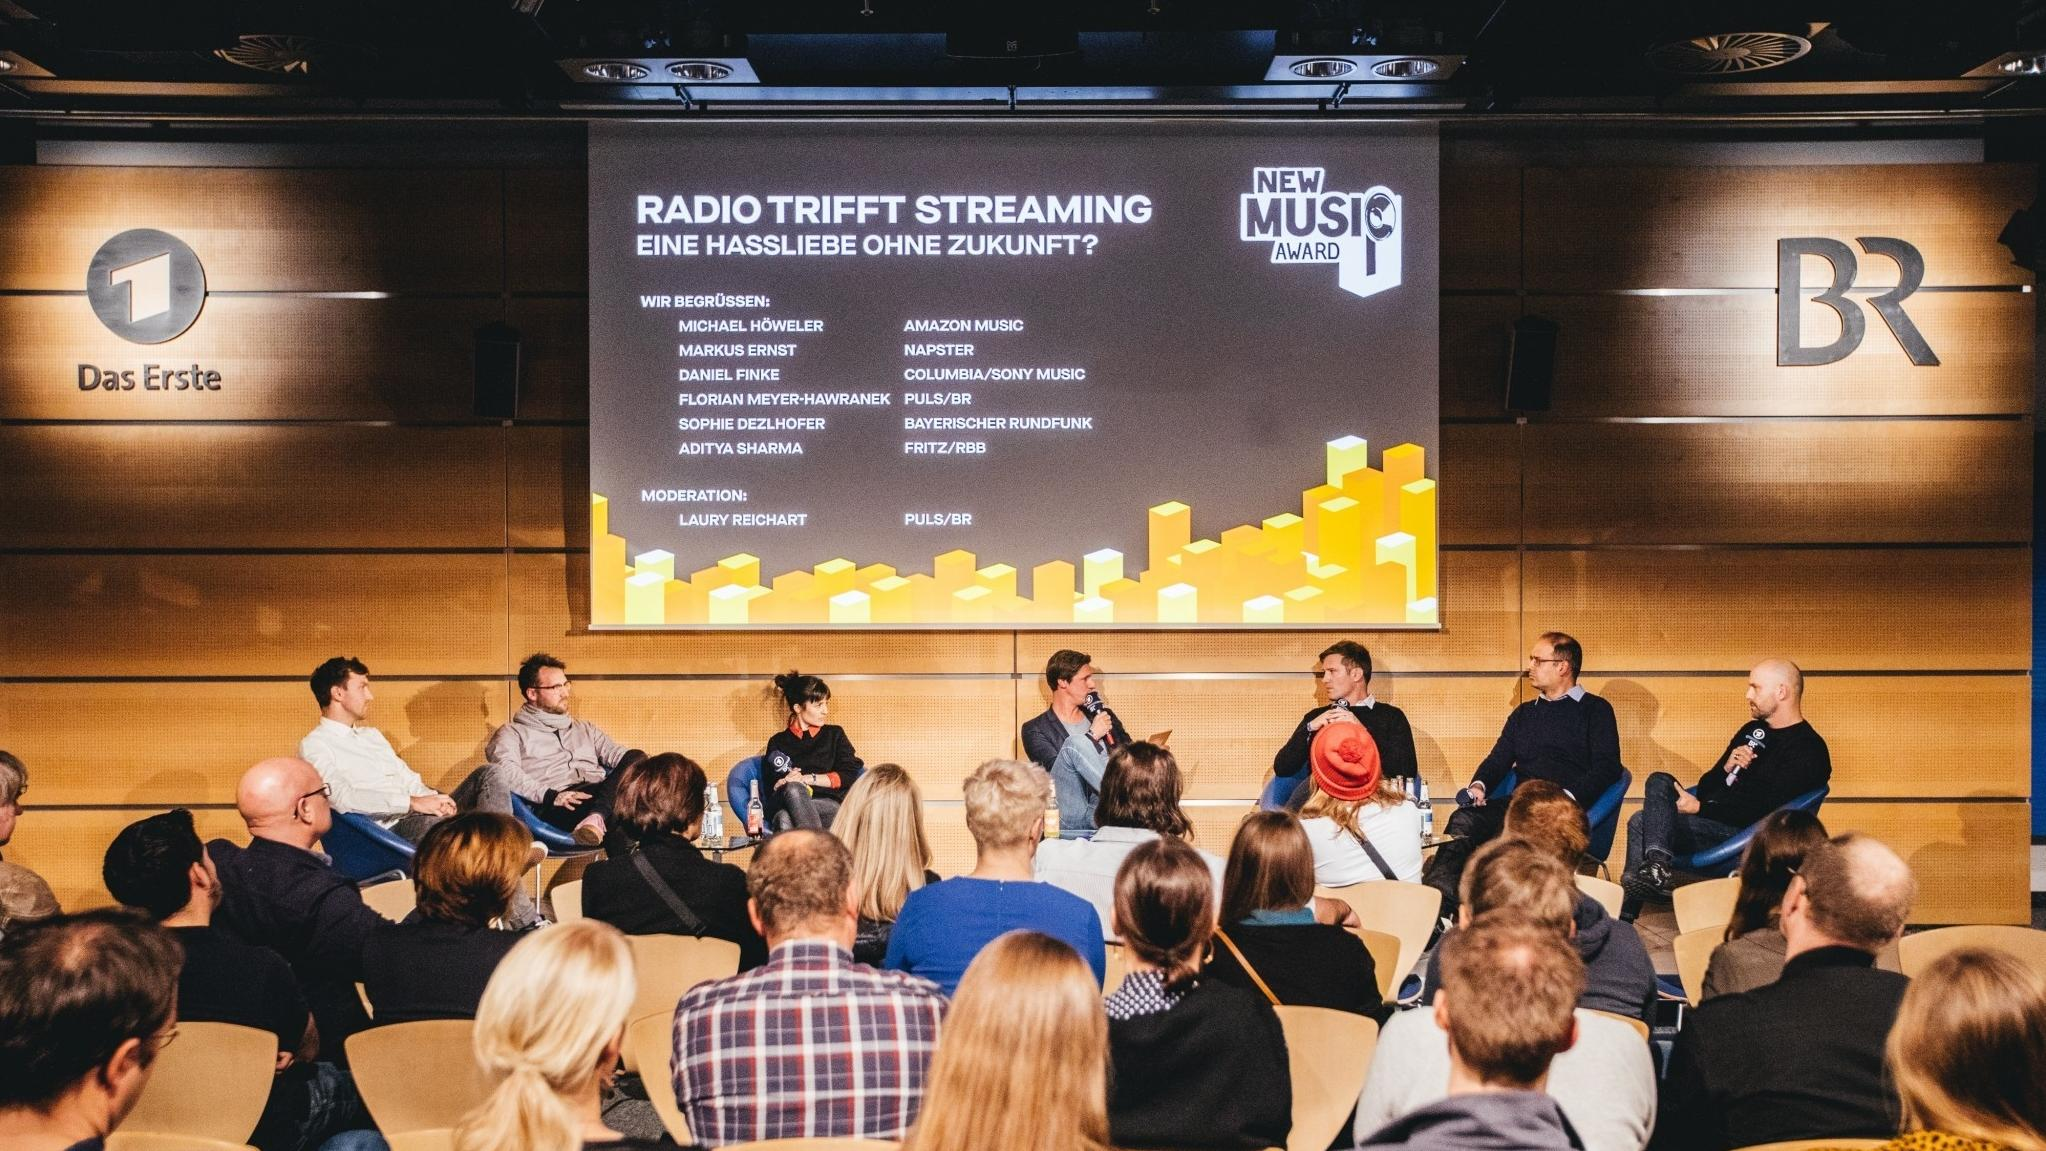 Radio trifft Streaming - Podiumsdiskussion im BR Funkhaus